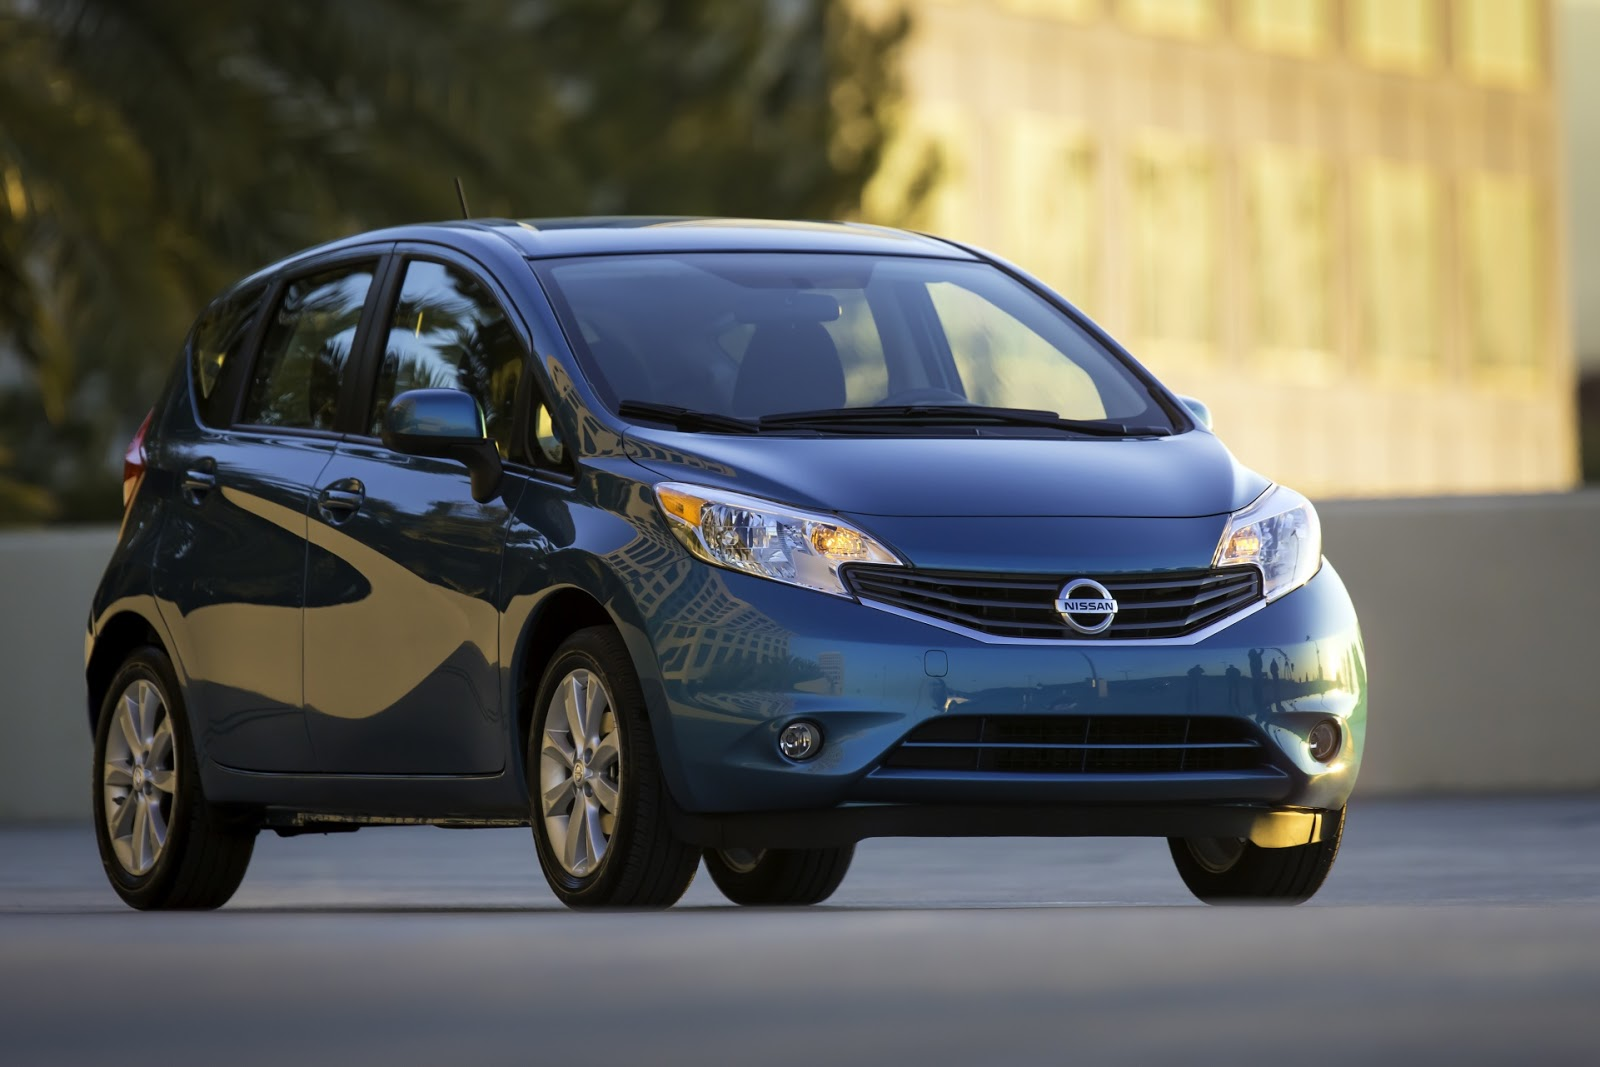 All Cars NZ: 2013 Nissan Versa Note